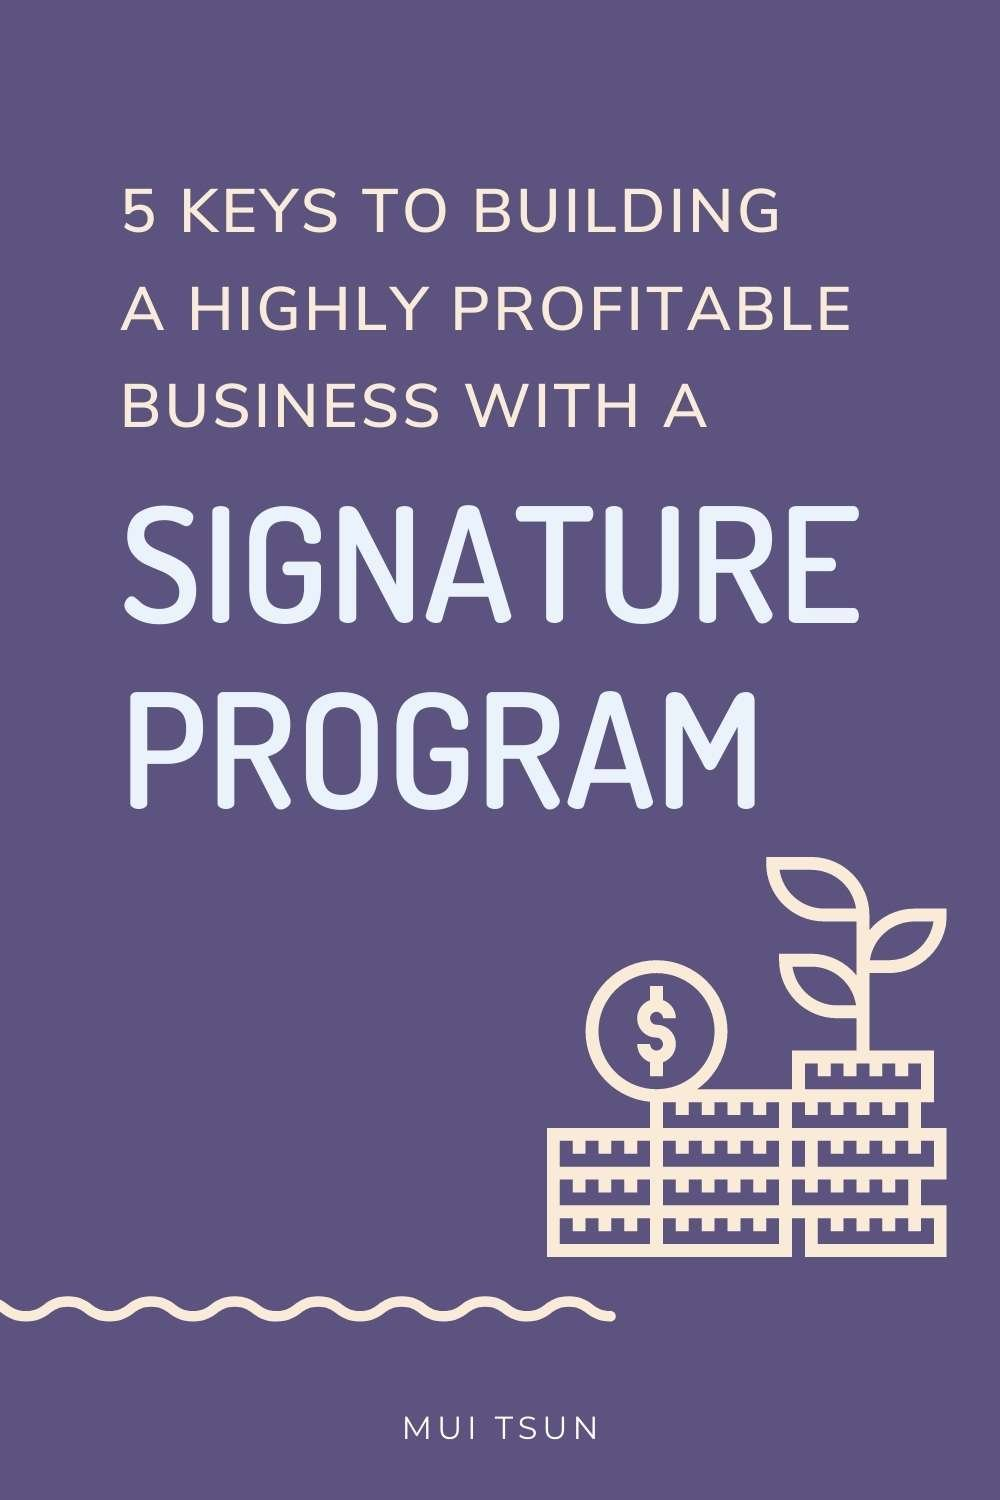 5 Keys to Building a Highly Profitable Business With a Signature Program